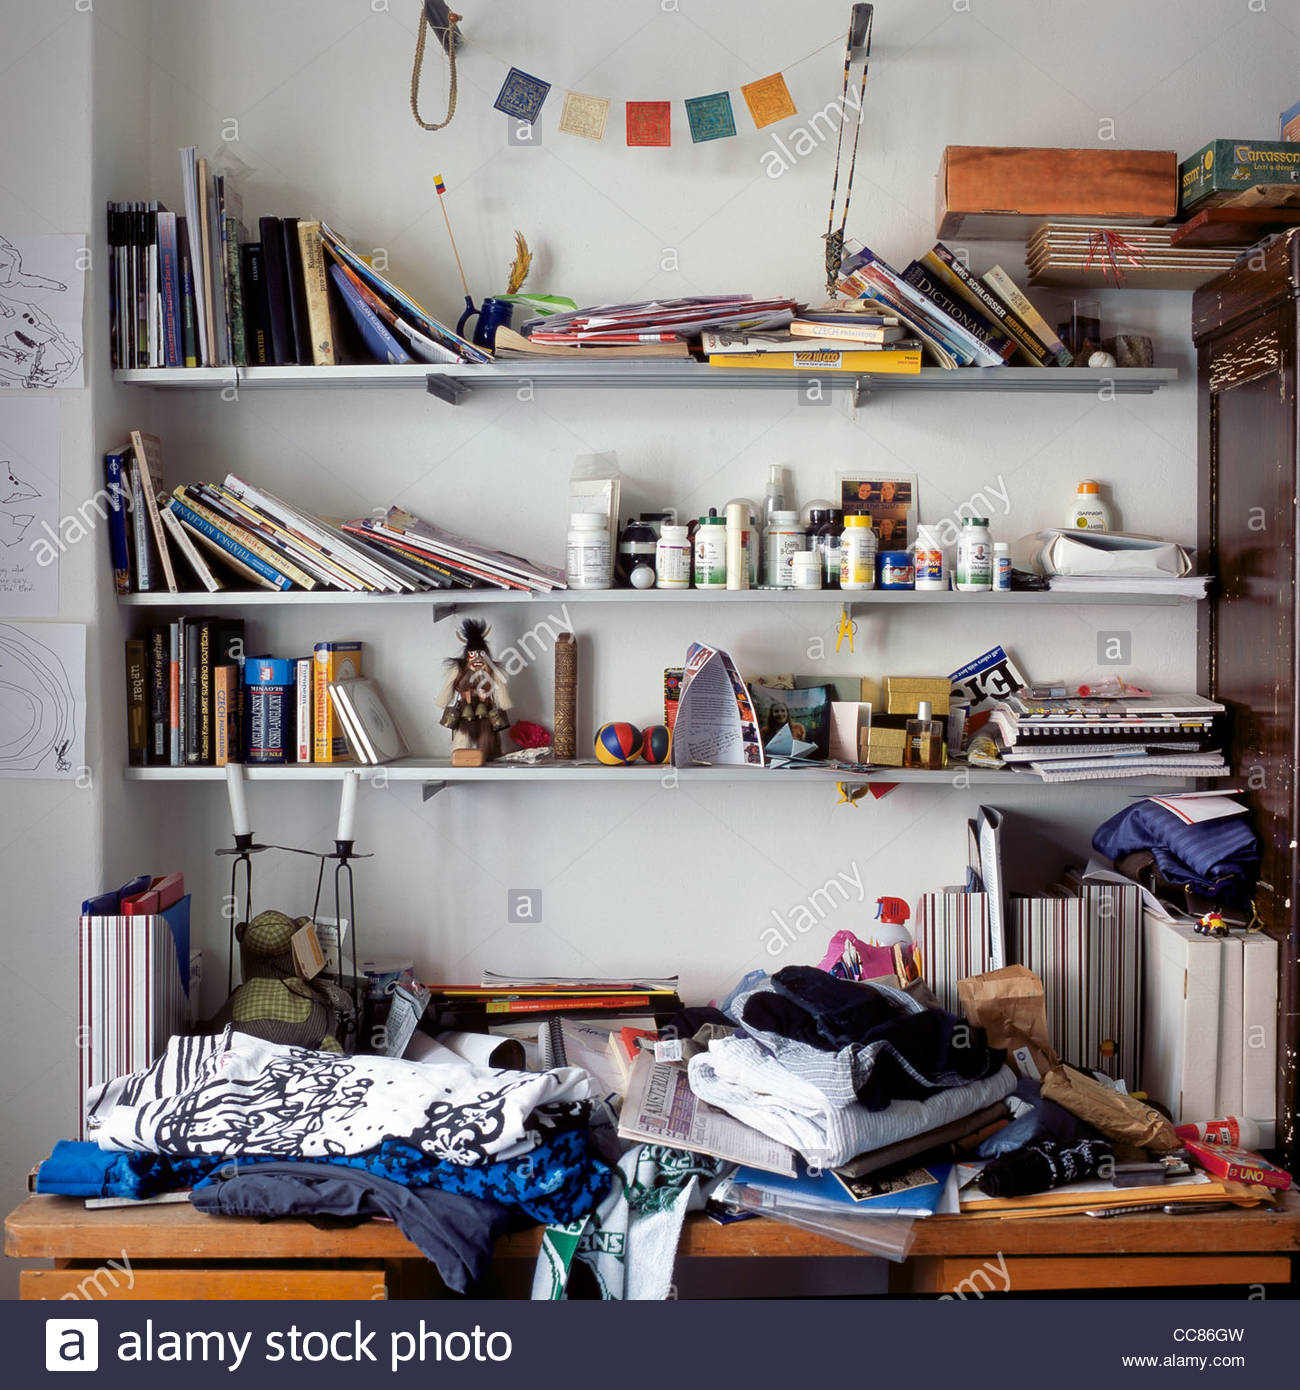 Shelves in a messy bedroom filled with books, vitamins, clothes, and photos - Stock Image